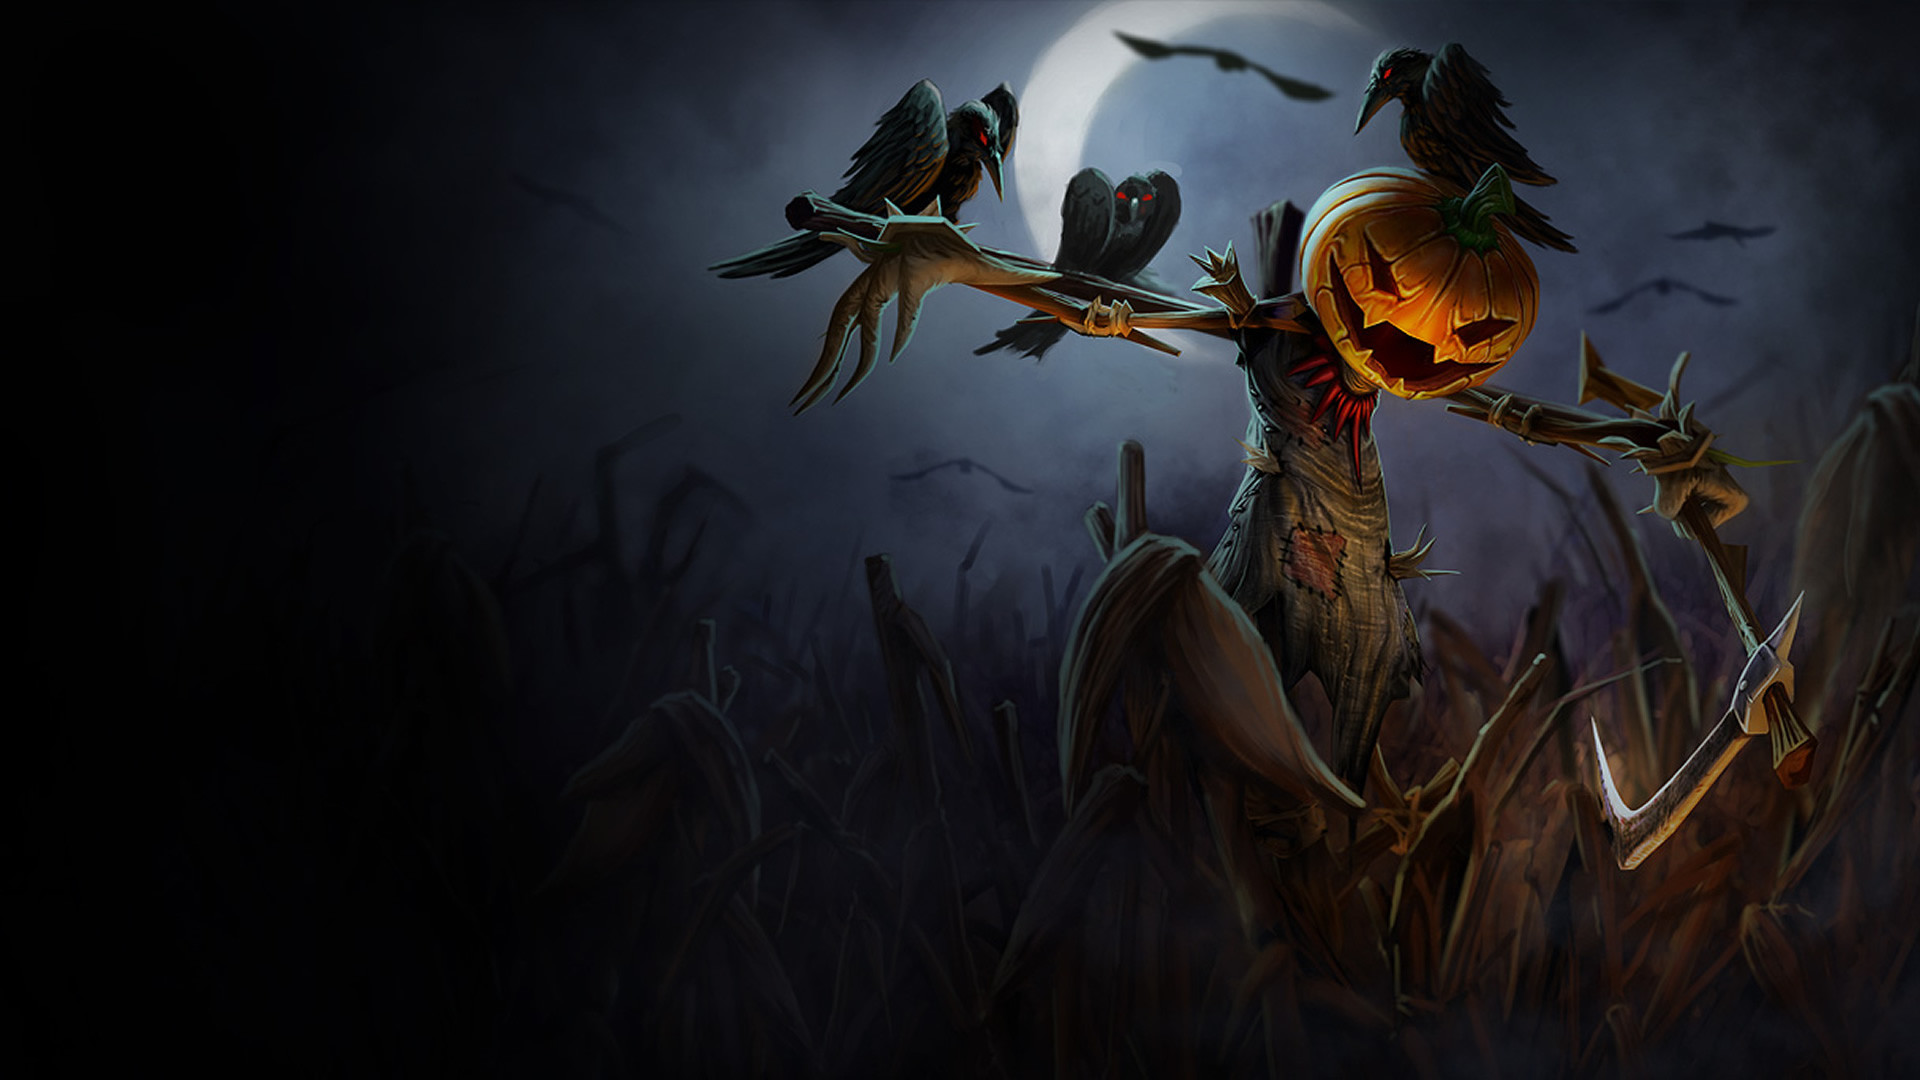 1920x1080 Pumpkin Head Fiddlesticks Wallpaper - LeagueSplash